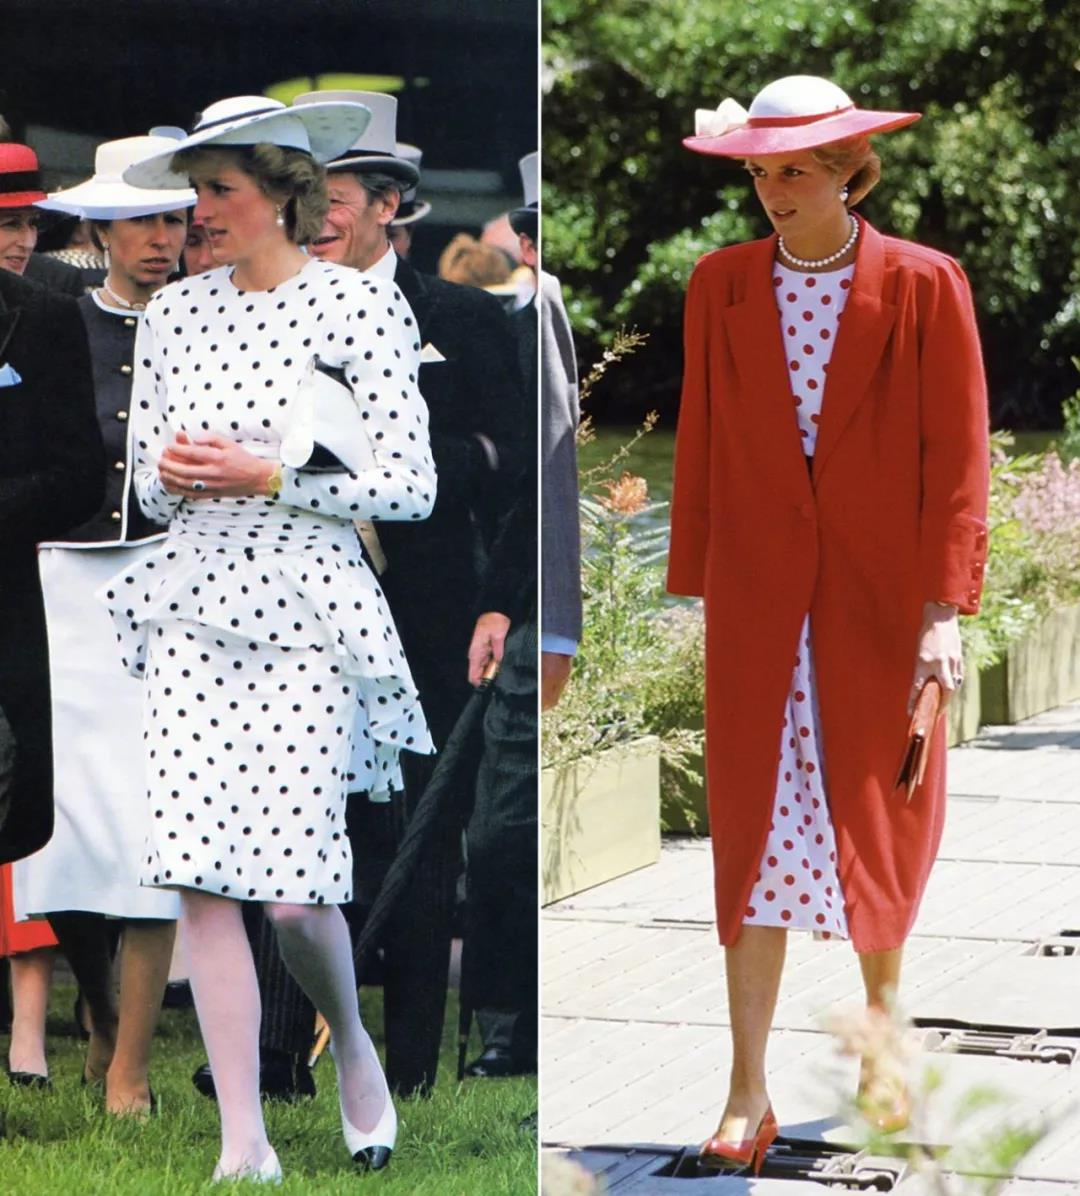 princess-diana-wears-polka-dot-dress